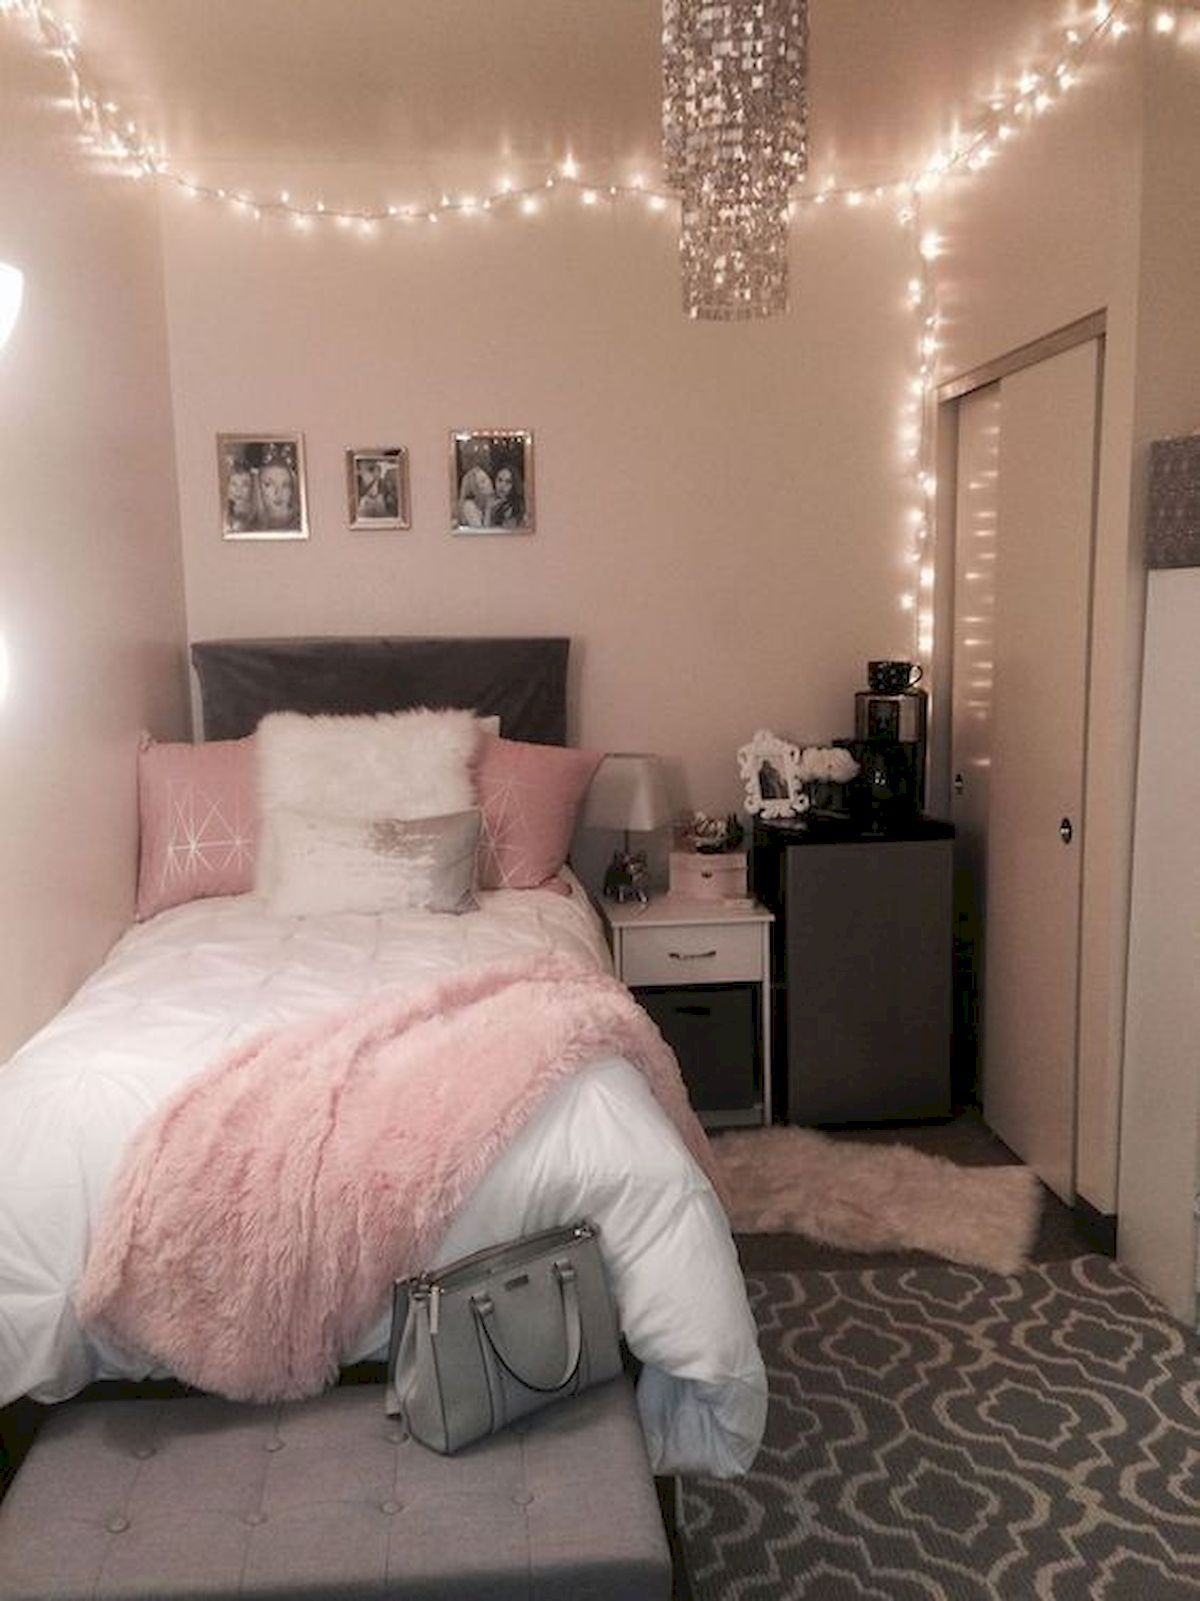 6 Cute Small Bedroom Design and Decor Ideas for Teenage Girl